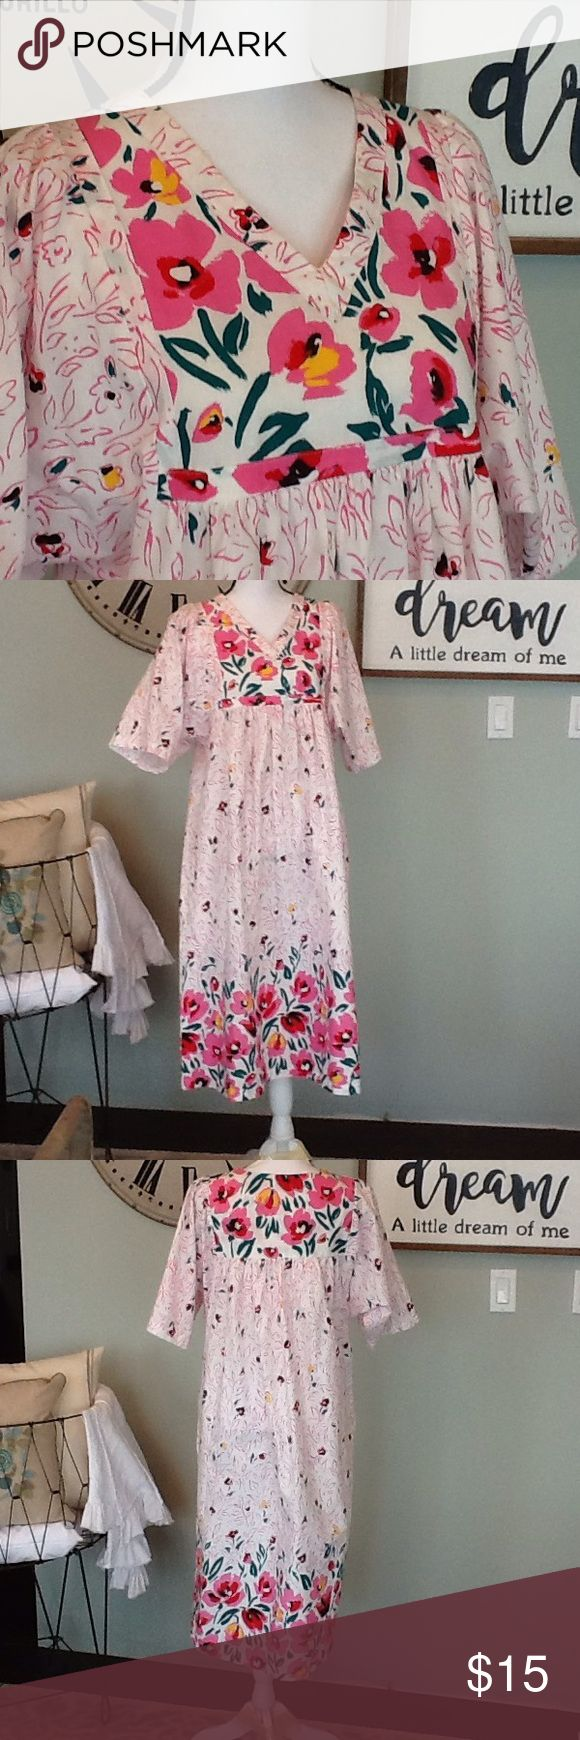 Gillian & O'Malley house dress (duster) Perfect for those stay-home lounging days. We ALL have them! The size, fabric content, and care instruction tag was cut off. Fits like a medium or large. Cotton/polyester, machine wash. Used condition with normal wear. Gilligan & O'Malley Intimates & Sleepwear